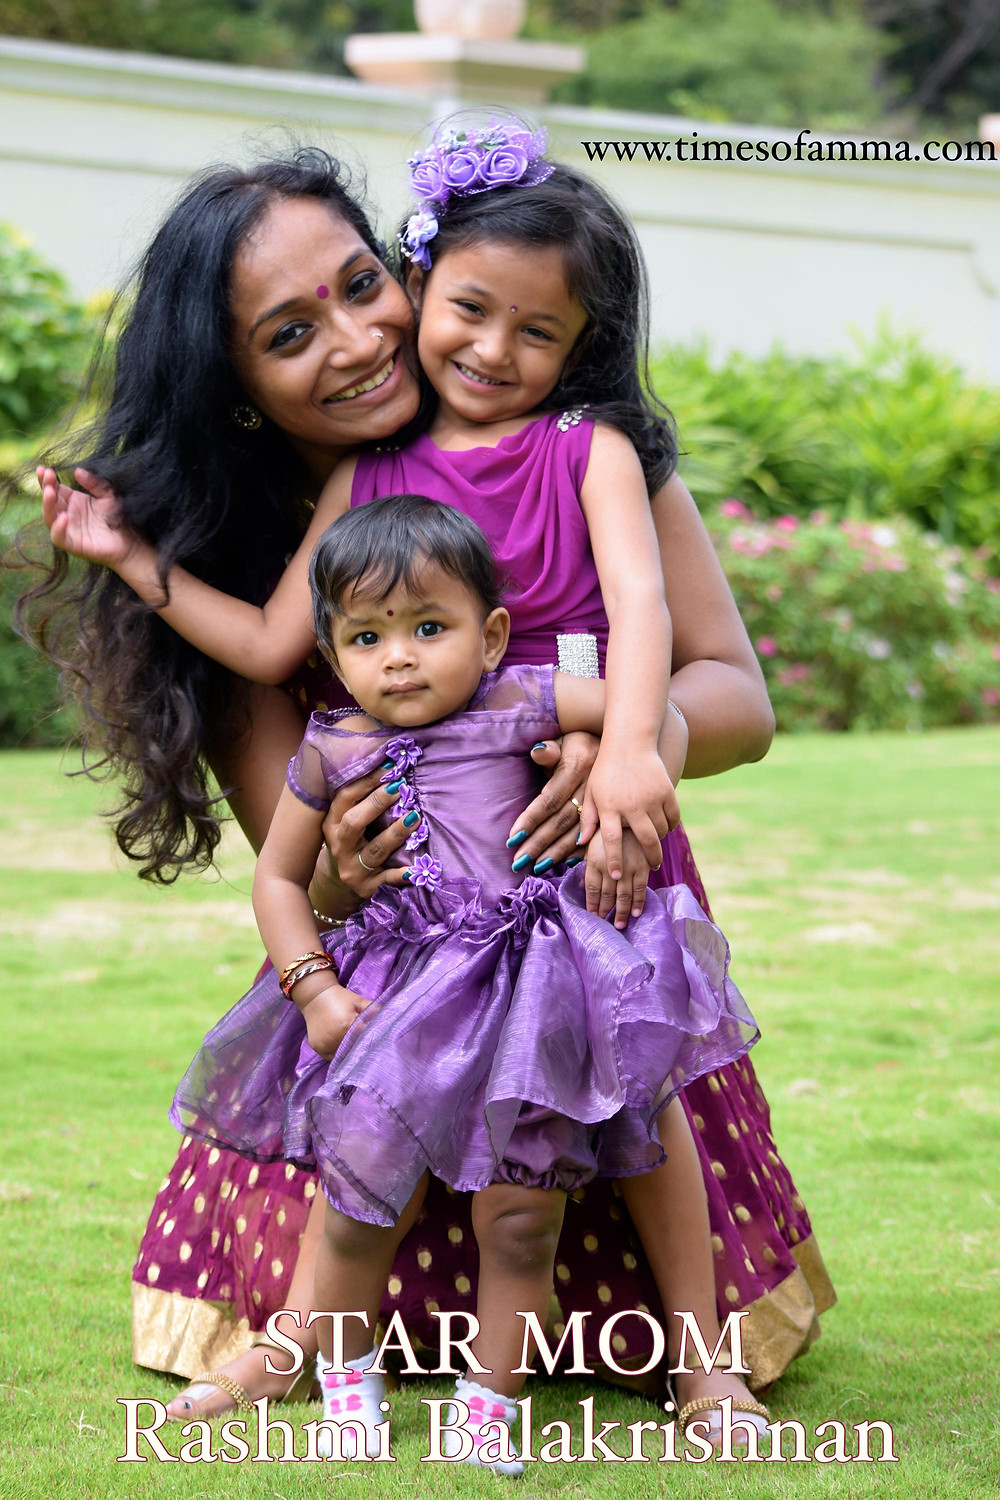 Rashmi Balakrishnan with her two daughters, Inspiring Indian Mother, Times Of Amma